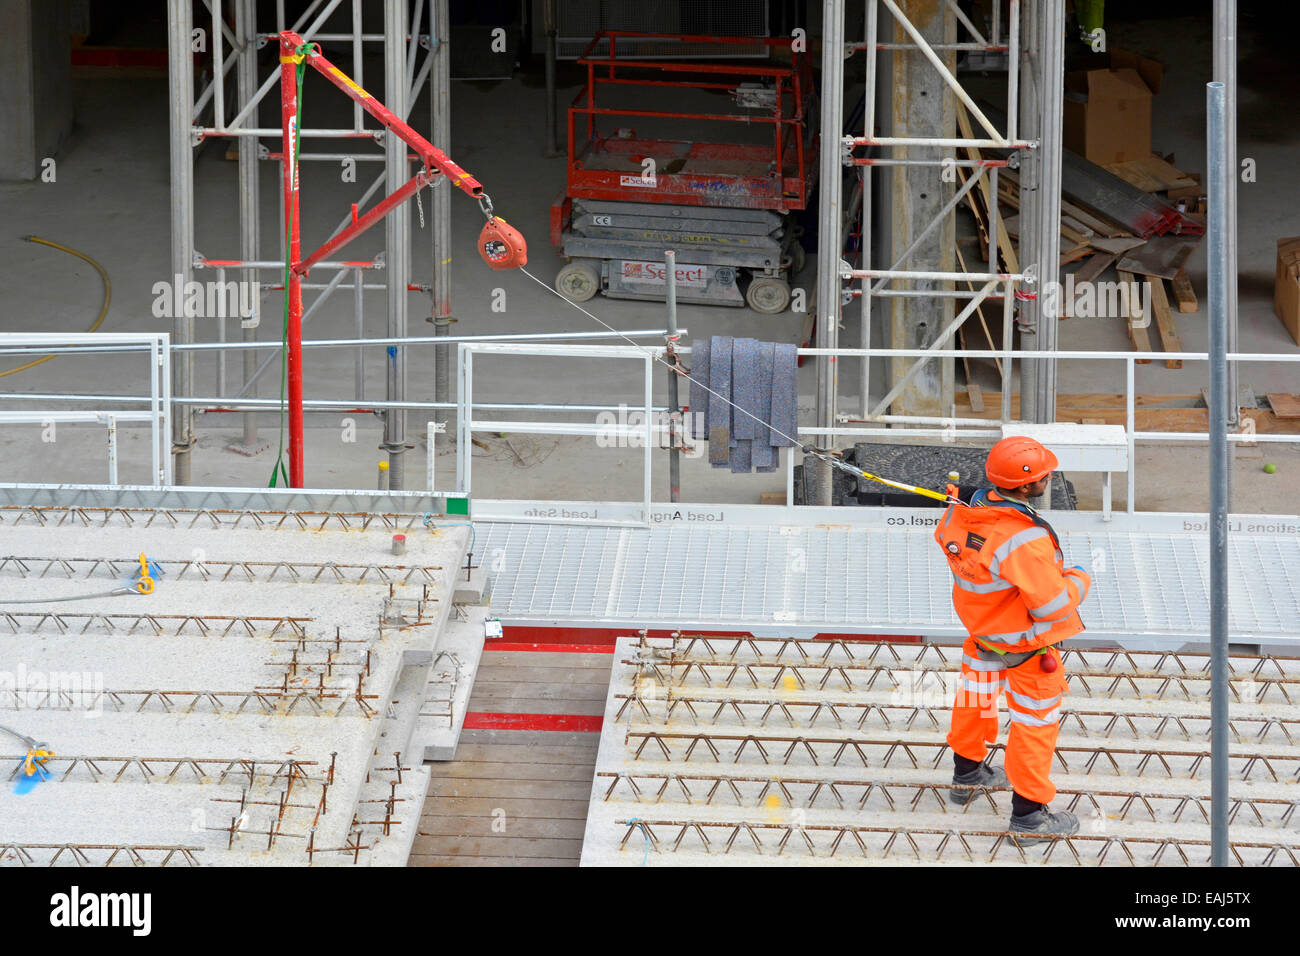 Fall prevention restraint system in use by workman on raised platform with safety harness worn under high visibility - Stock Image